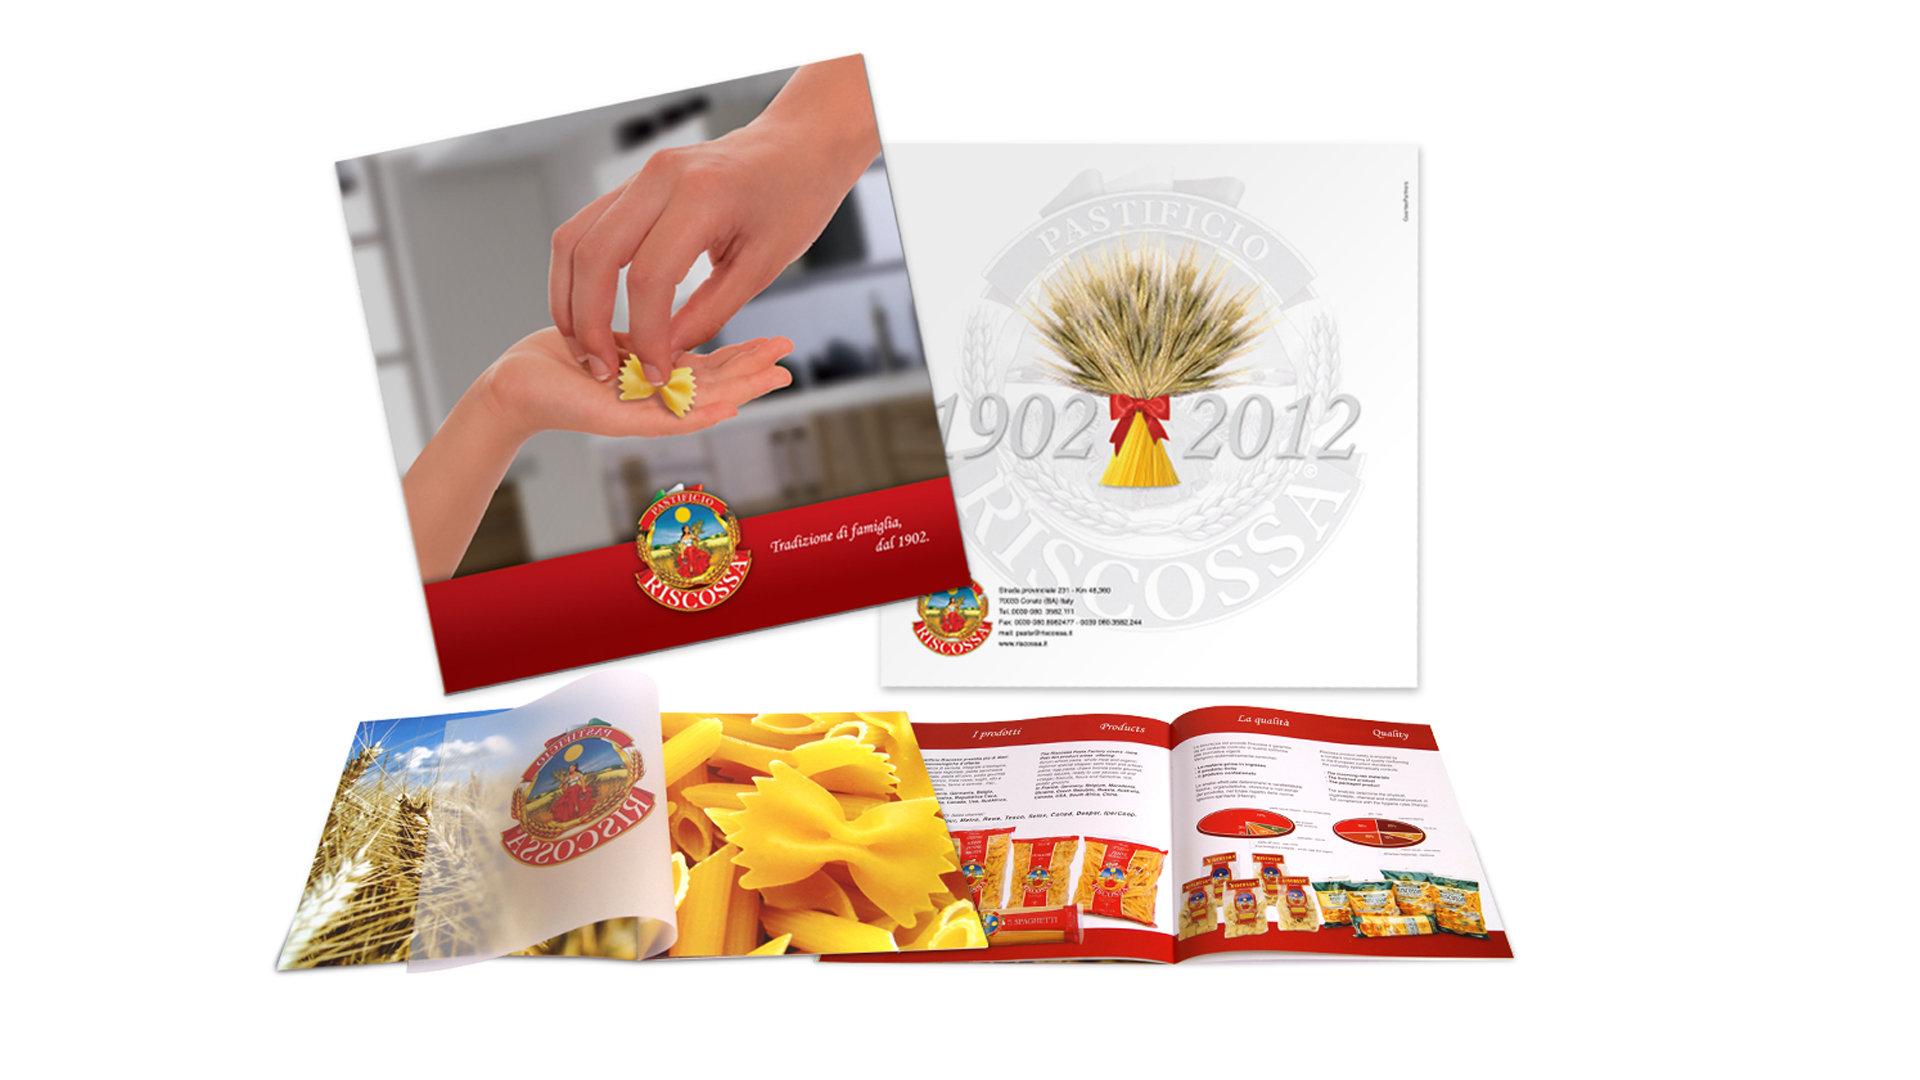 Brochure Pastificio Riscossa